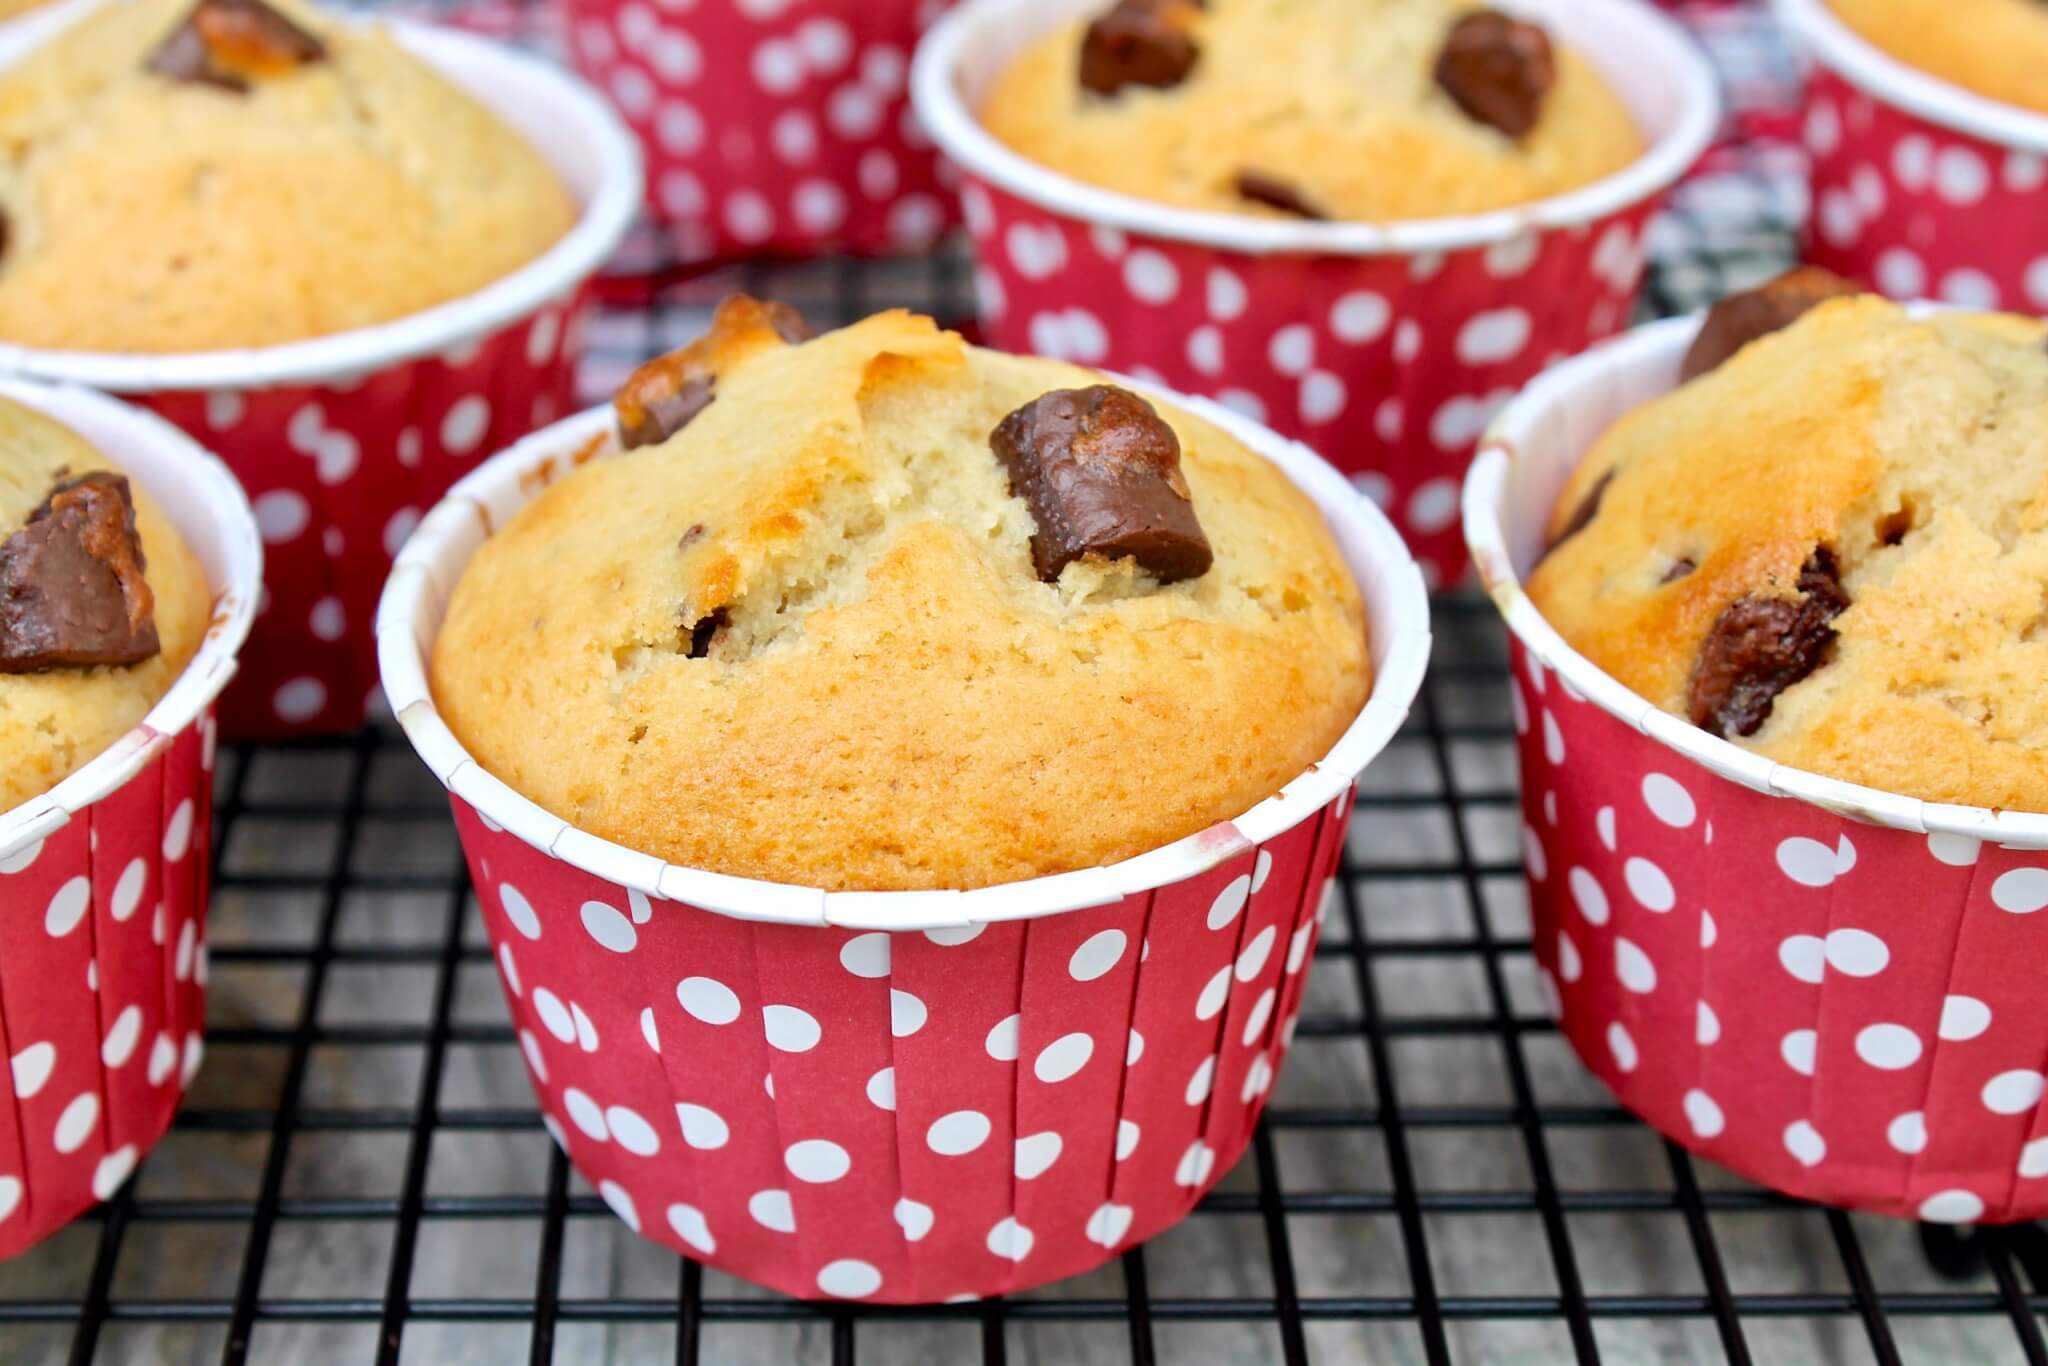 This quick and easy muffin recipe is perfect as a snack or dessert and makes a special breakfast treat. For a larger quantity, the recipe may easily be doubled and freezes quite well.